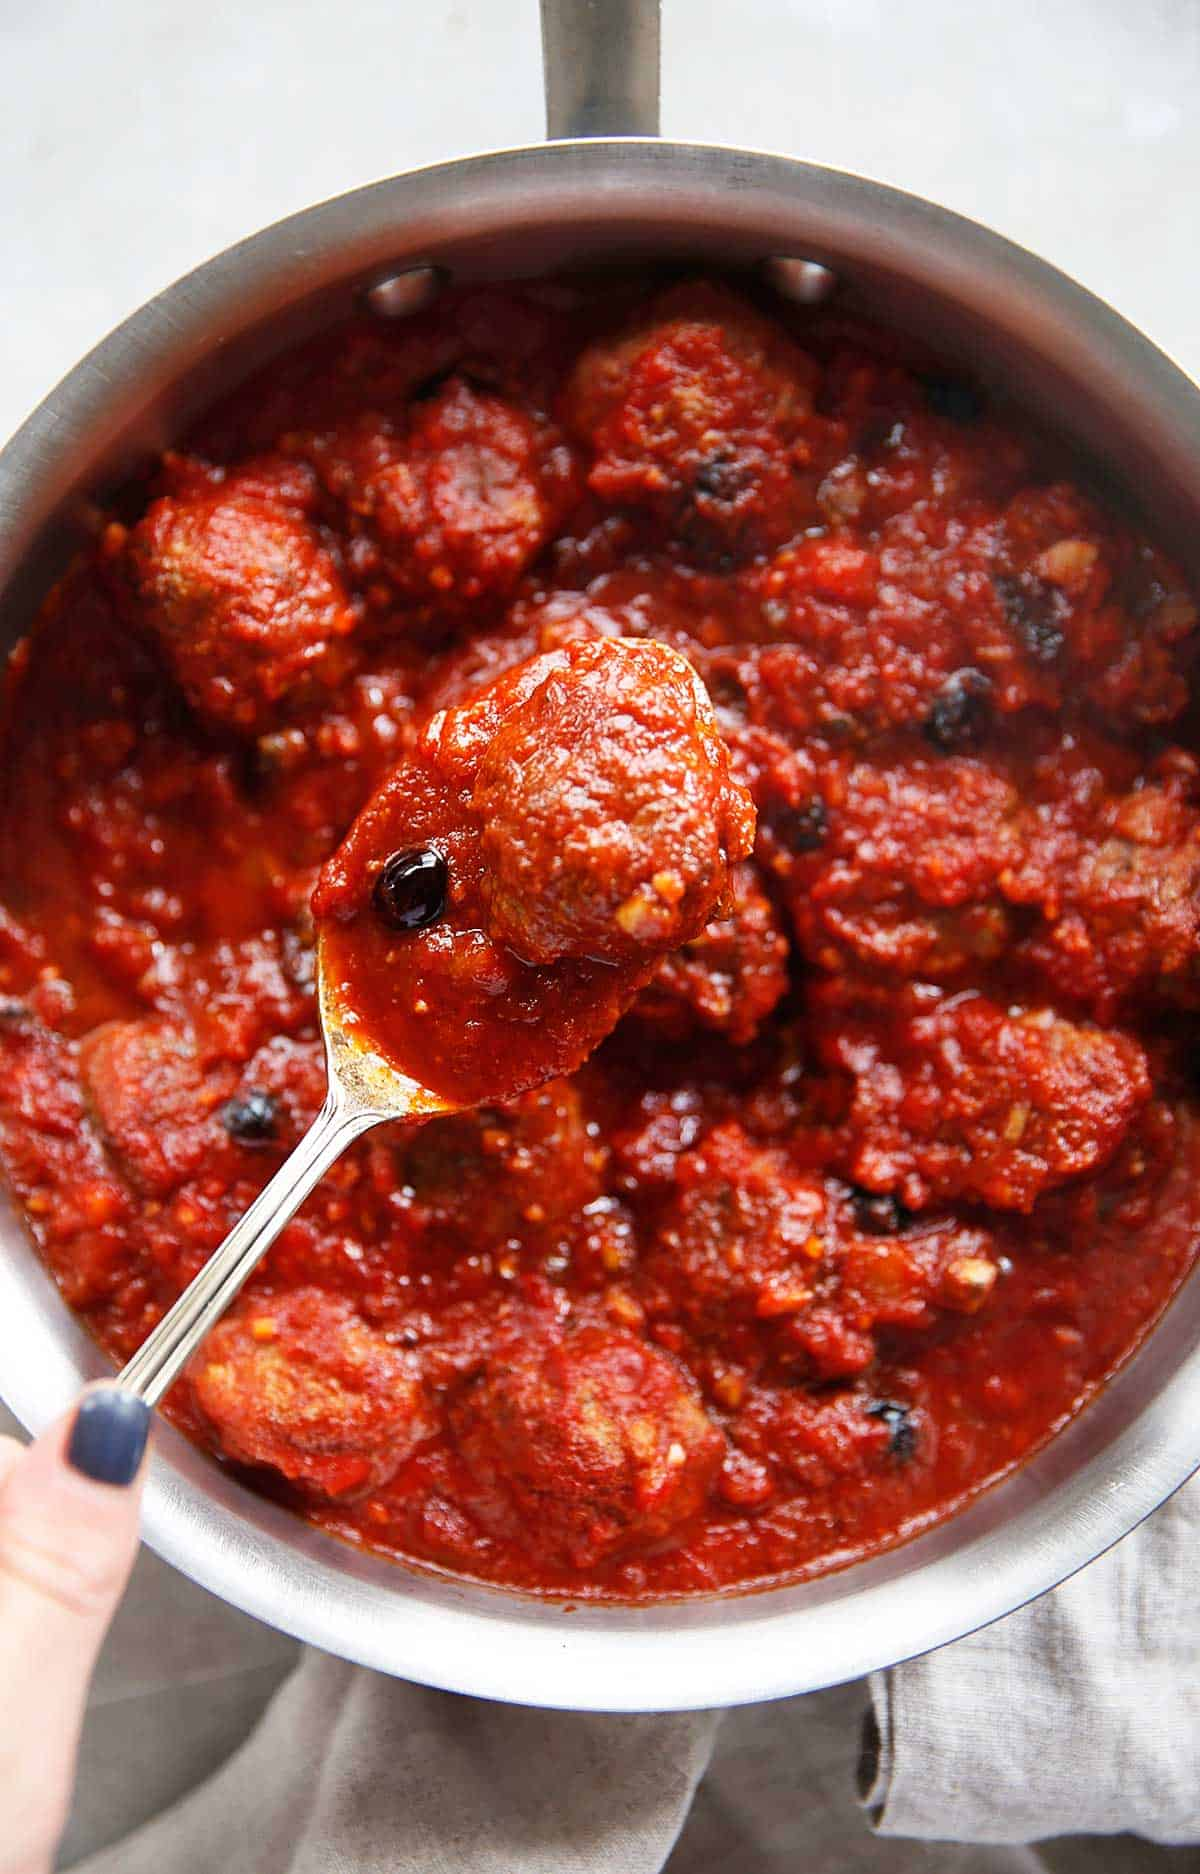 Nanny's sweet and sour meatballs.